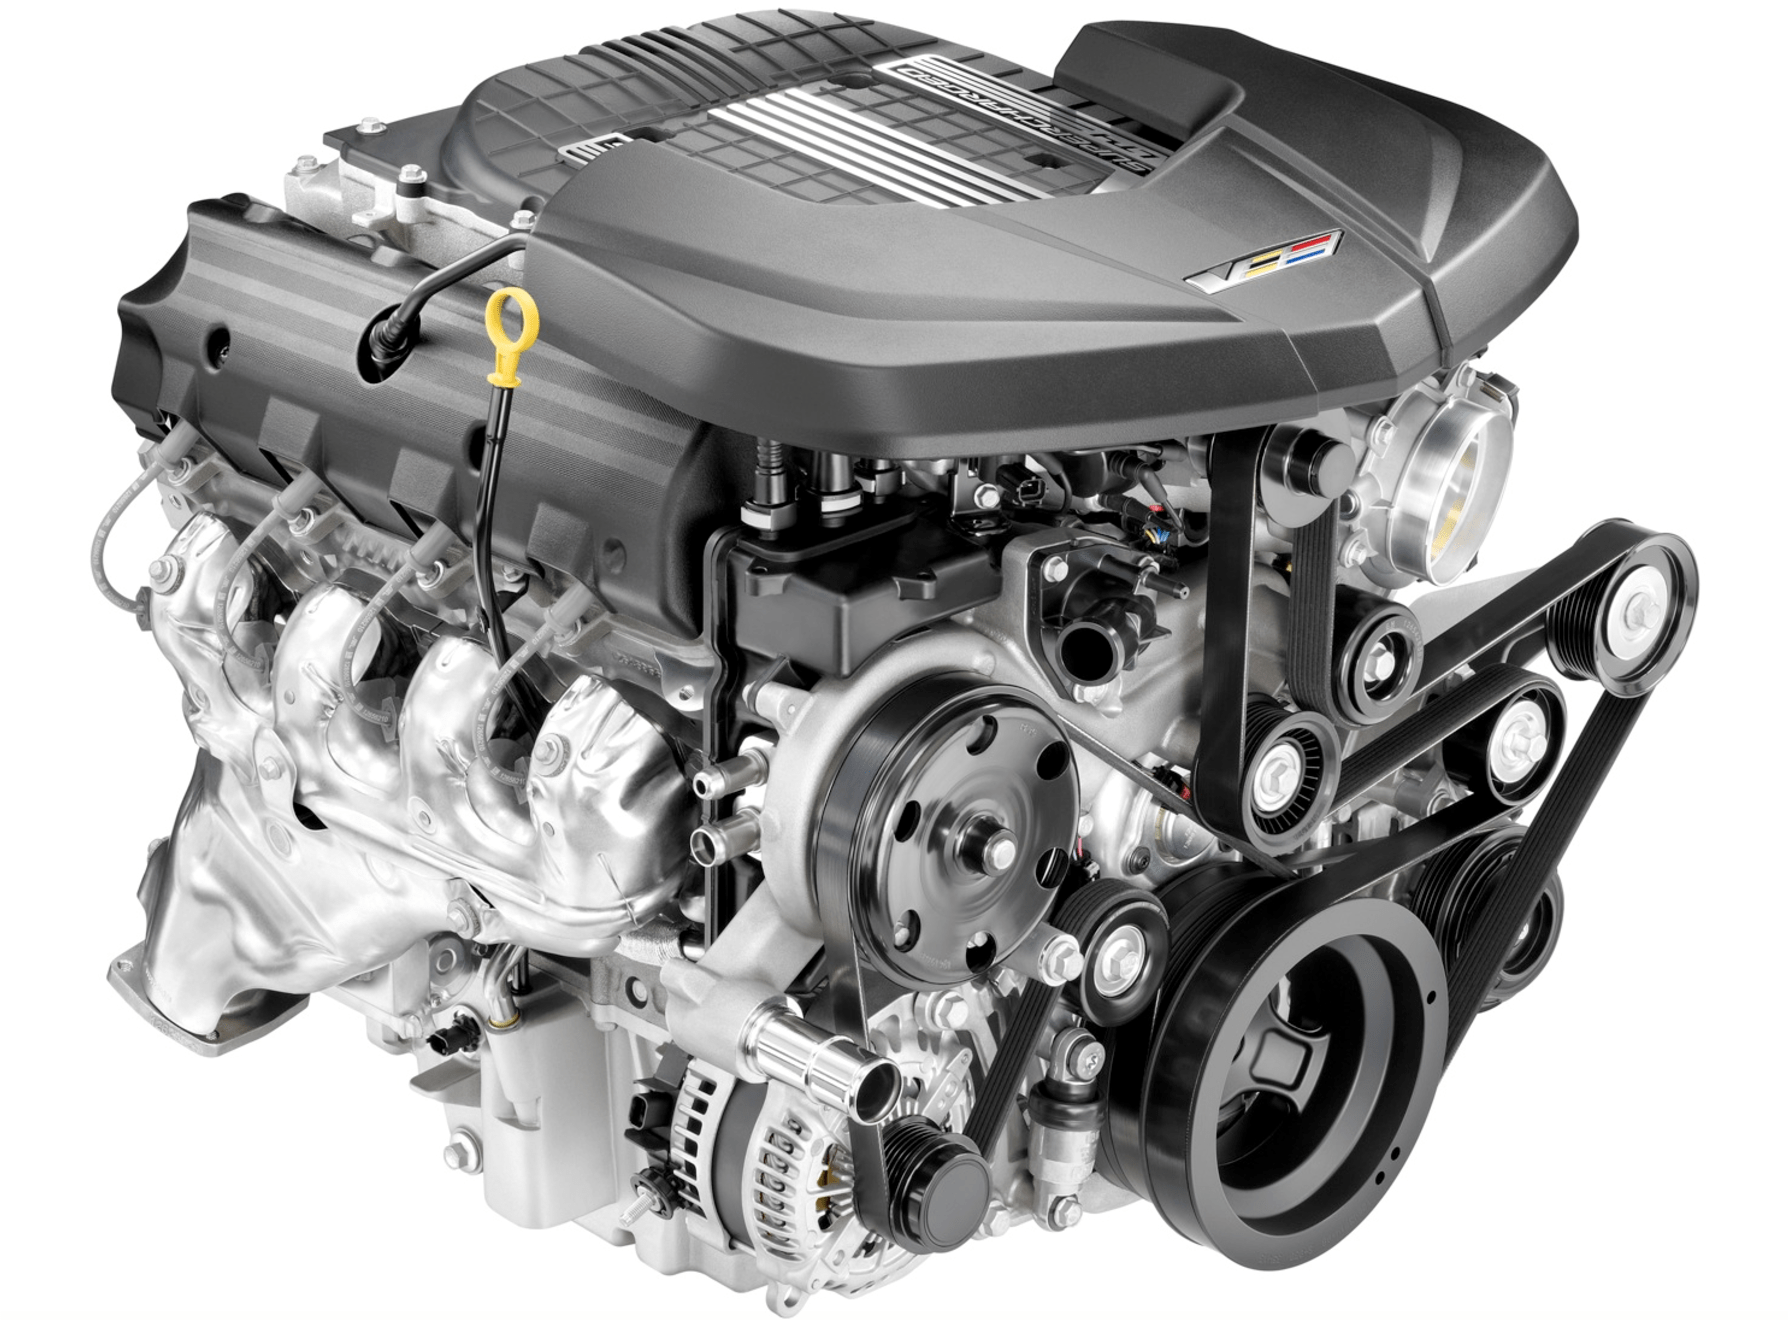 General Motors Supercharged V 8 6.2-liter